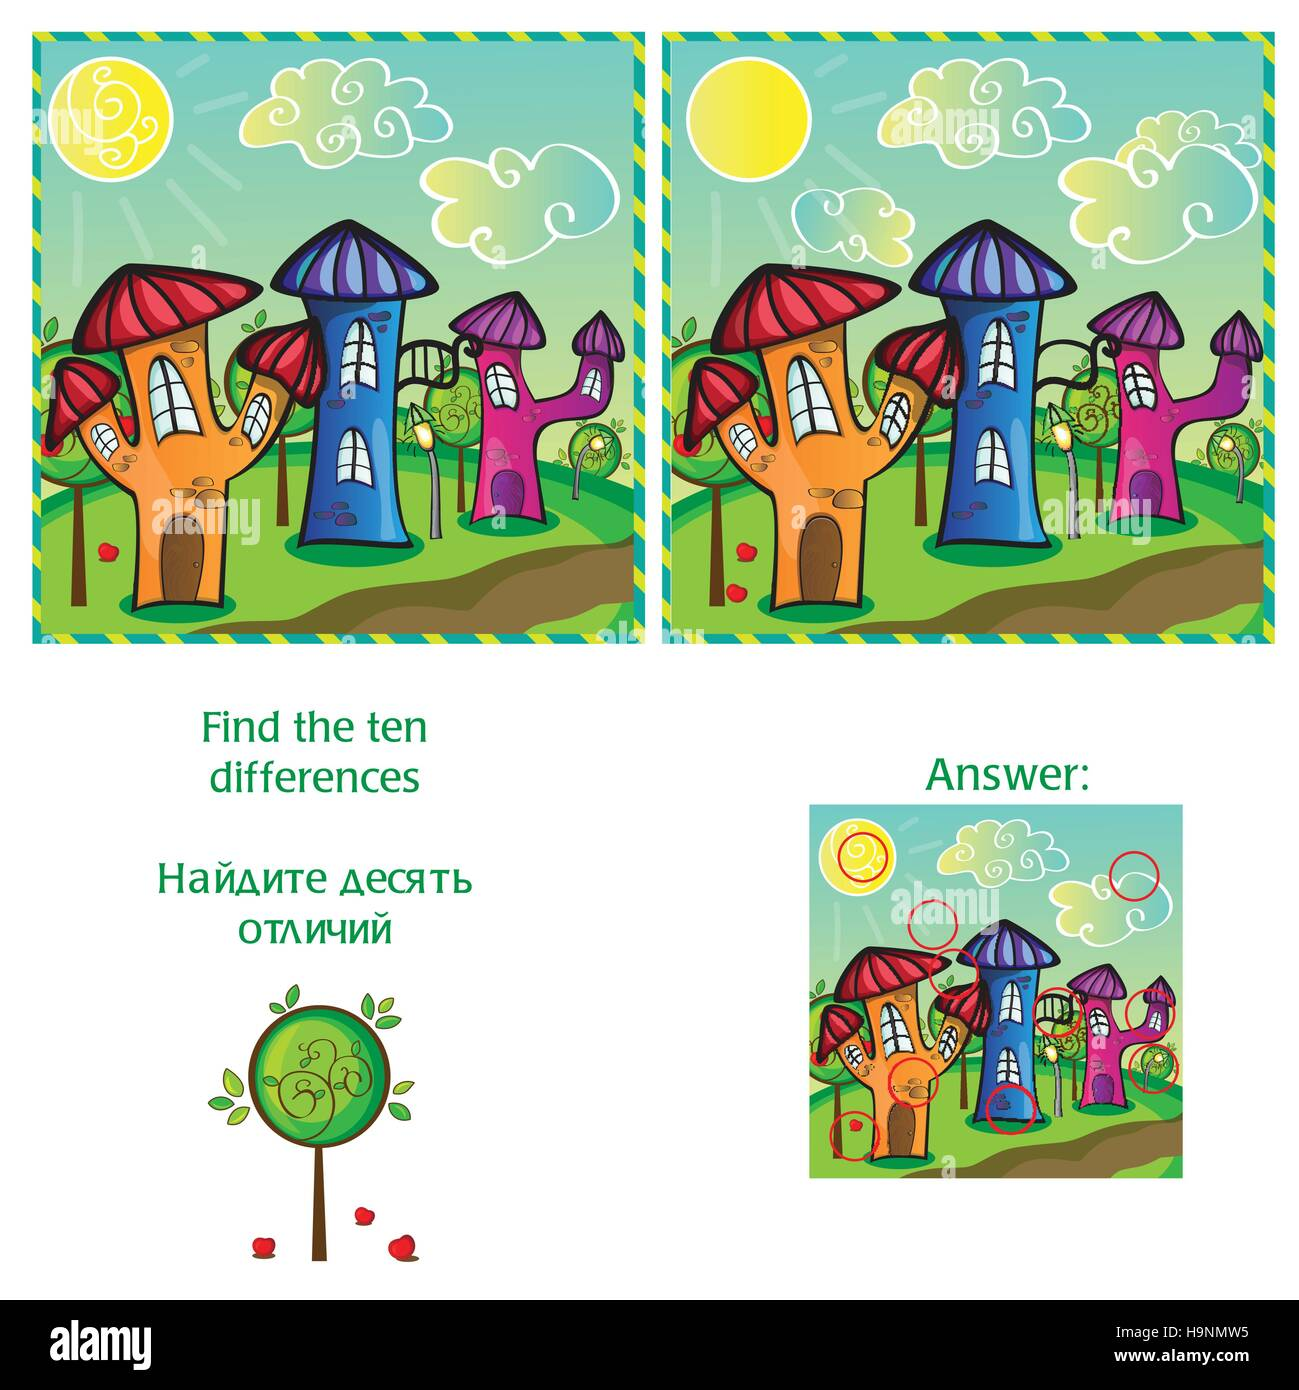 Visual Game - find 10 differences - with answer  - vector file - Stock Image